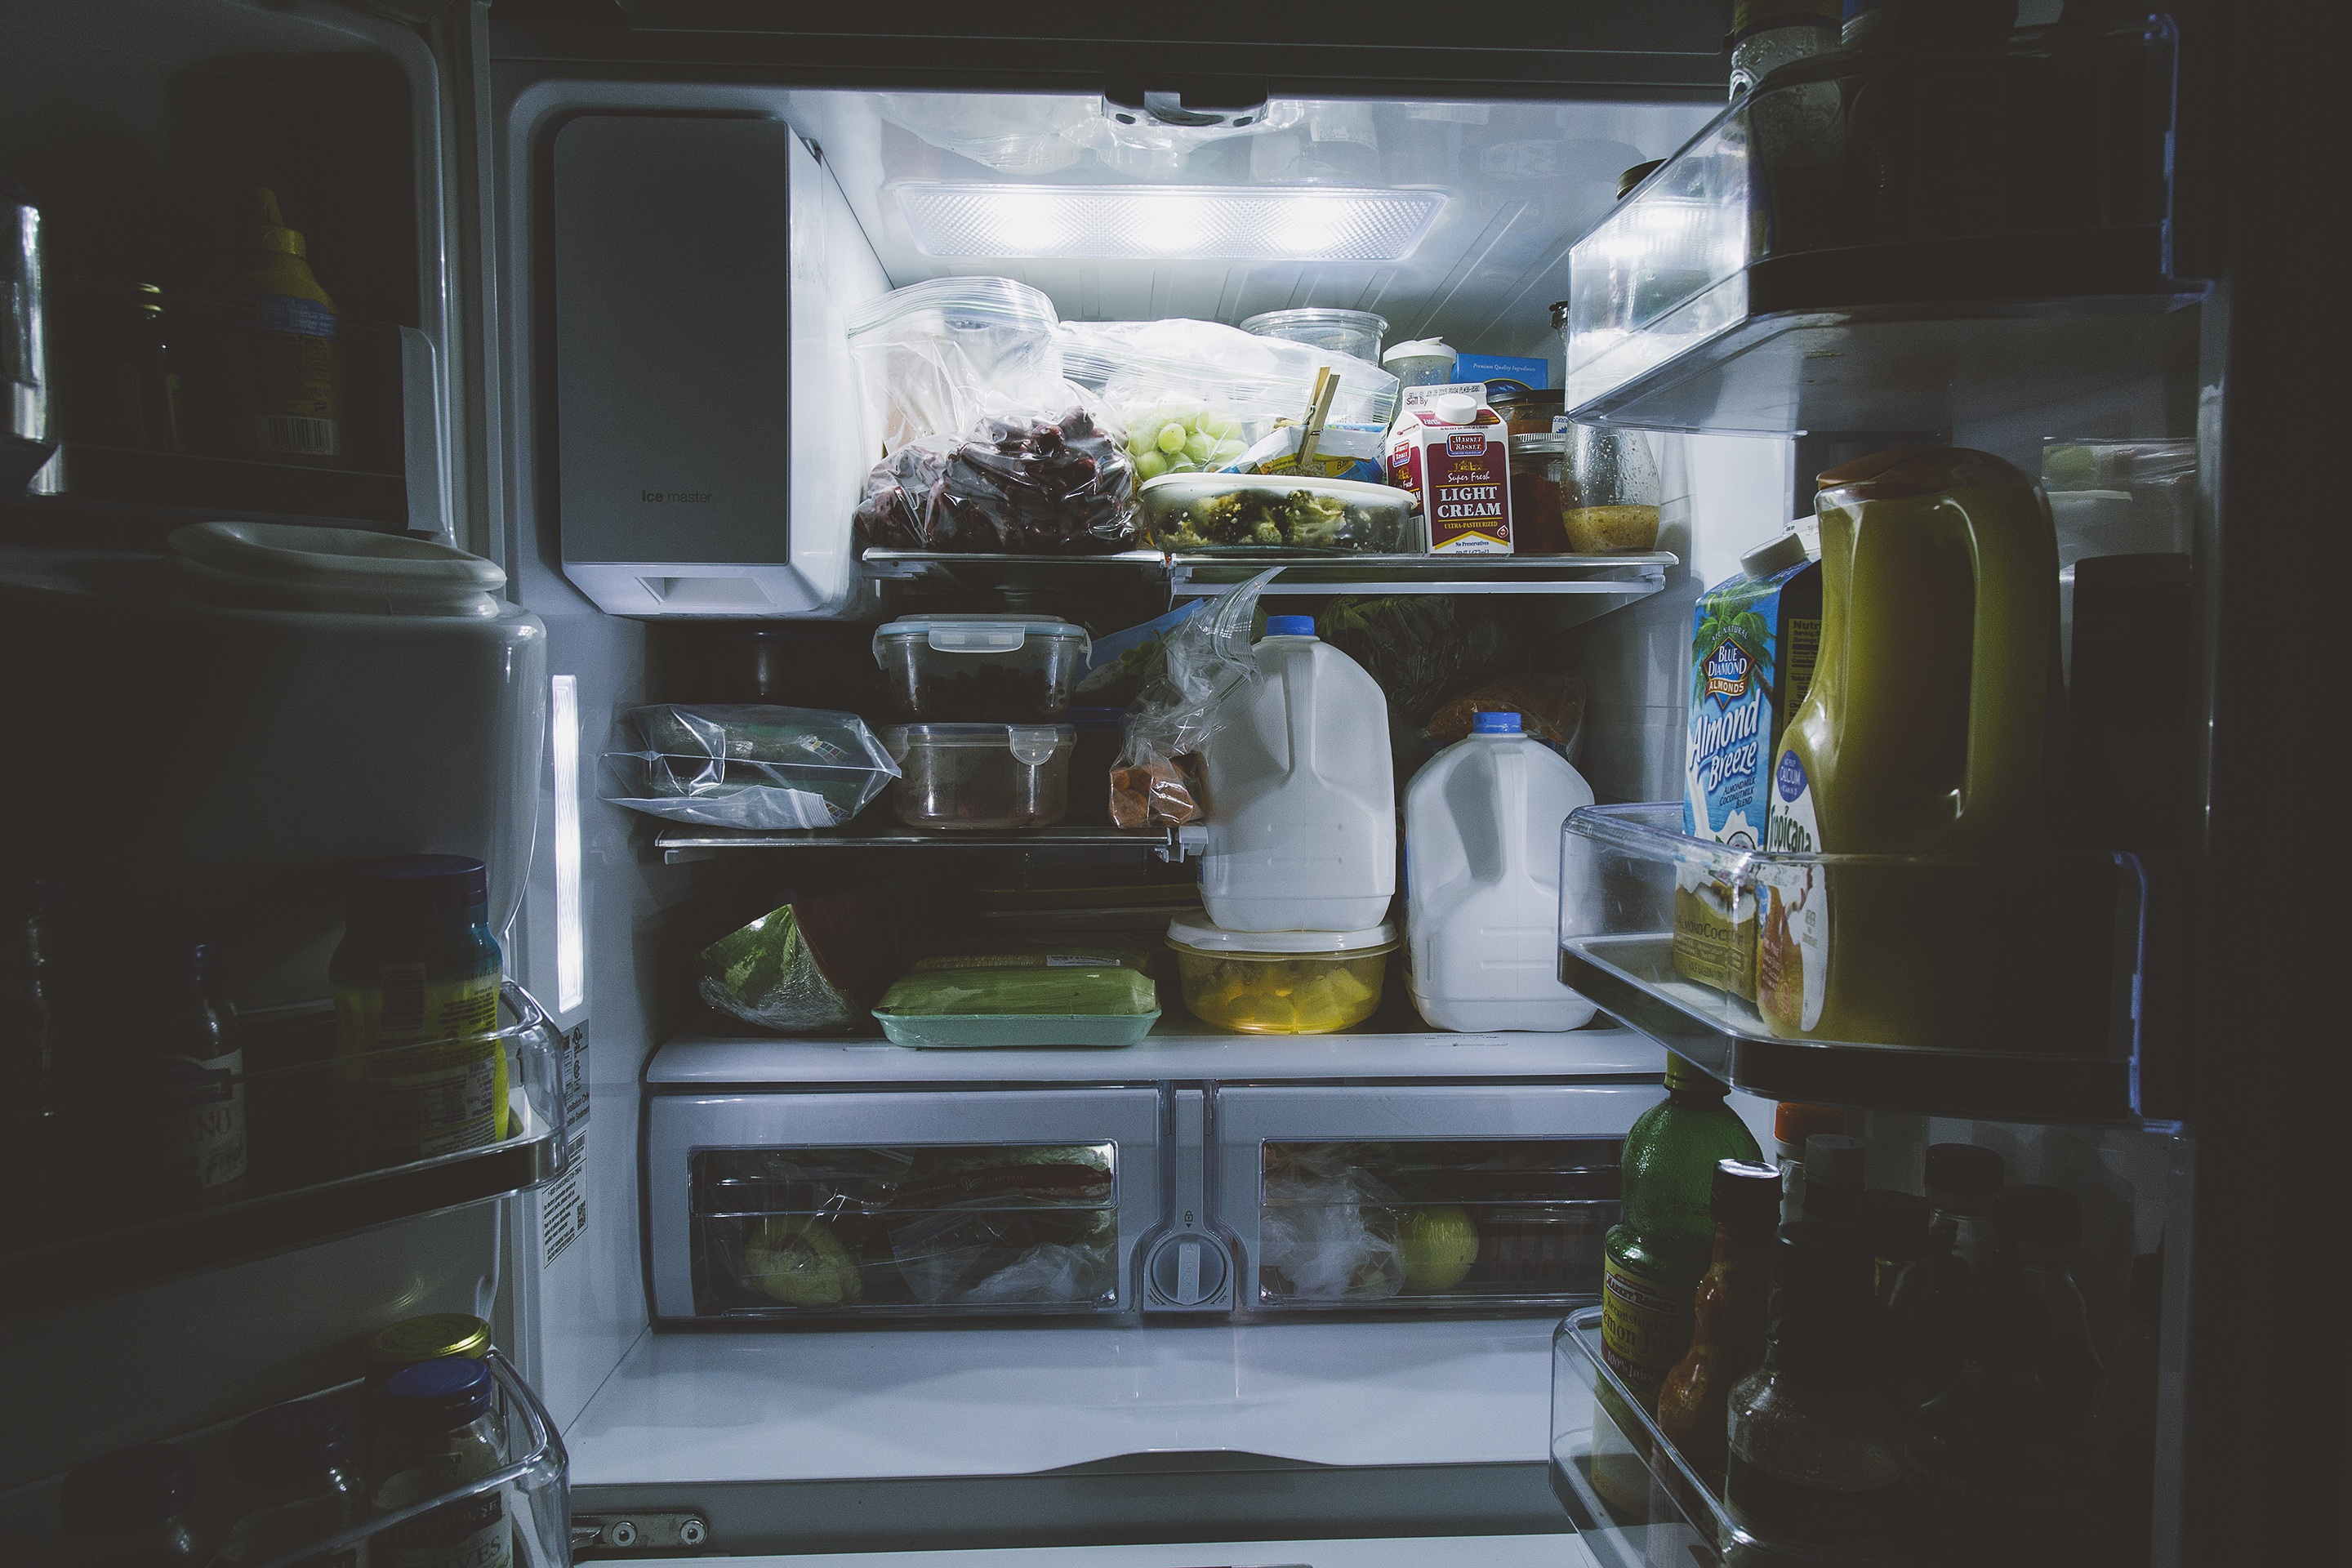 refrigerators can spread office germs